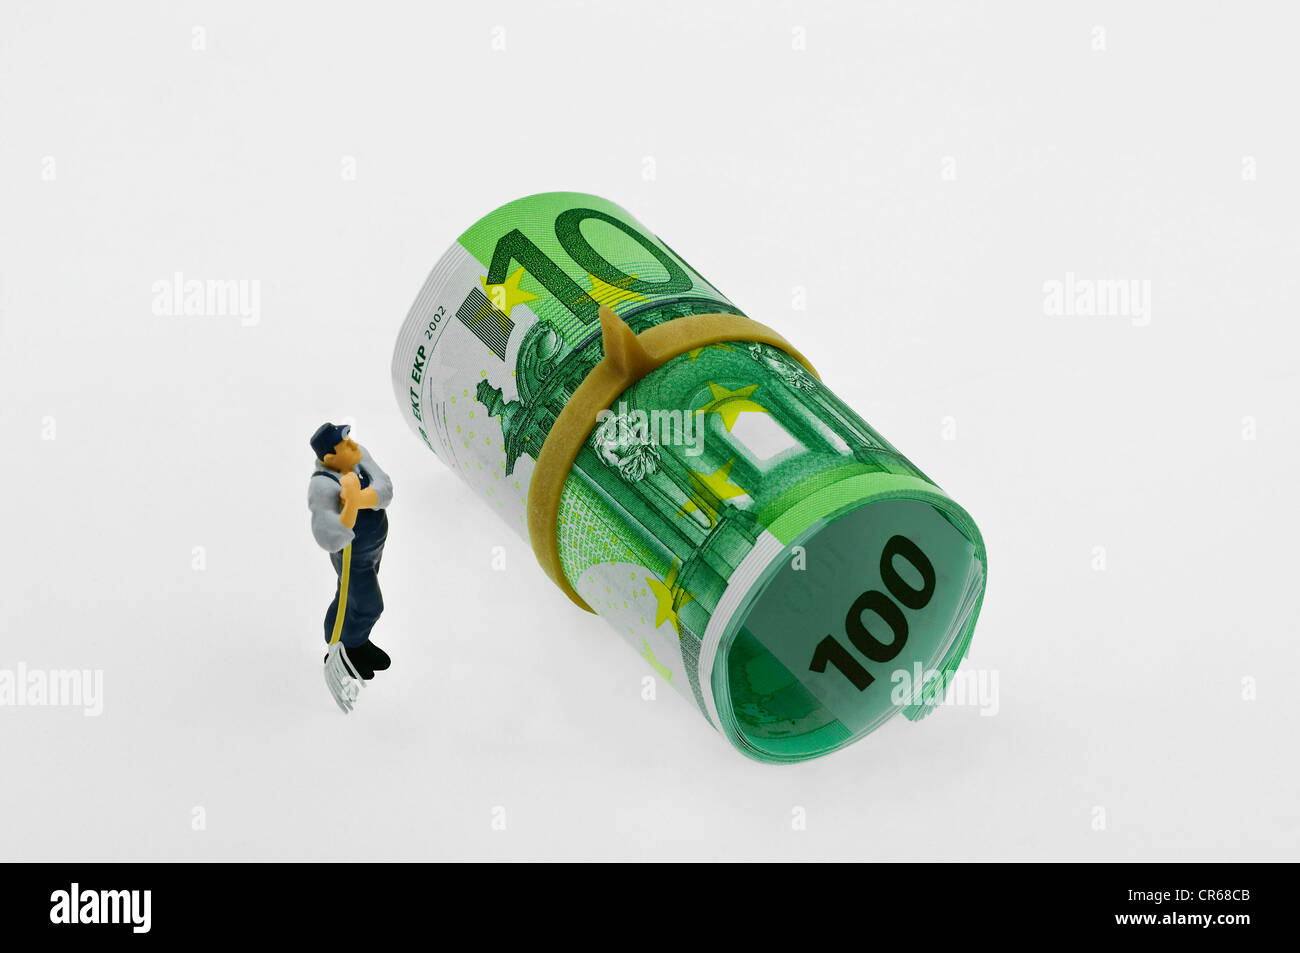 Miniature figure of a workman standing in front of roll of 100-euro notes and looking thoughtfully up - Stock Image